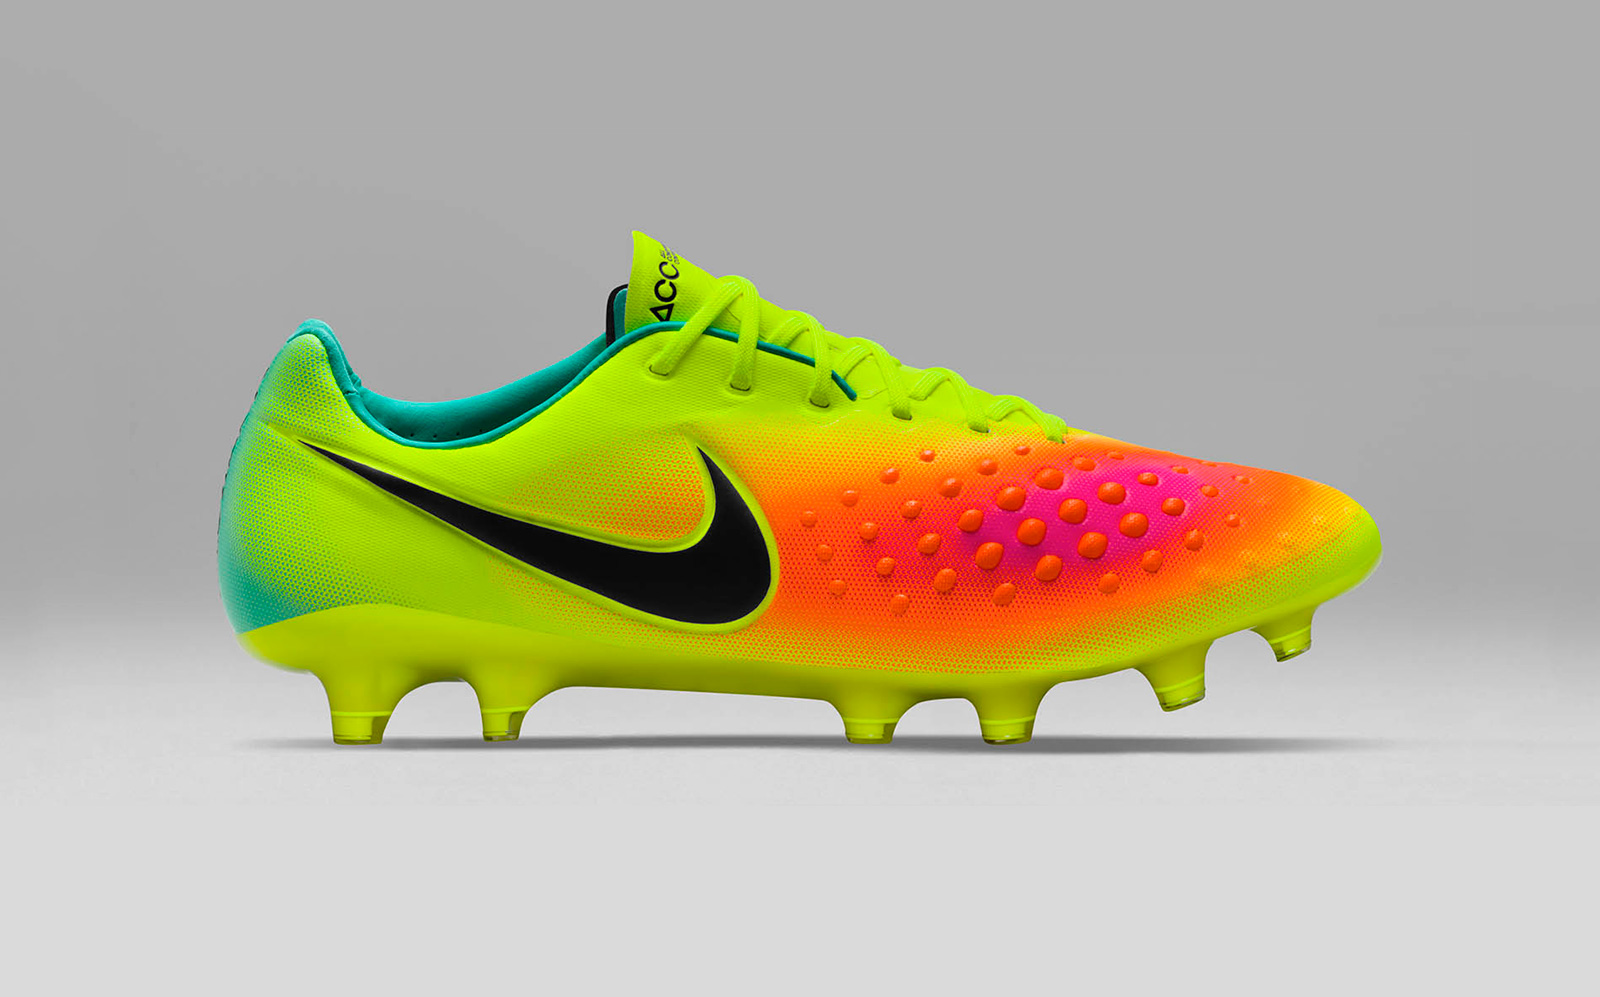 a1511537c7de Nike Magista Opus II football boots review